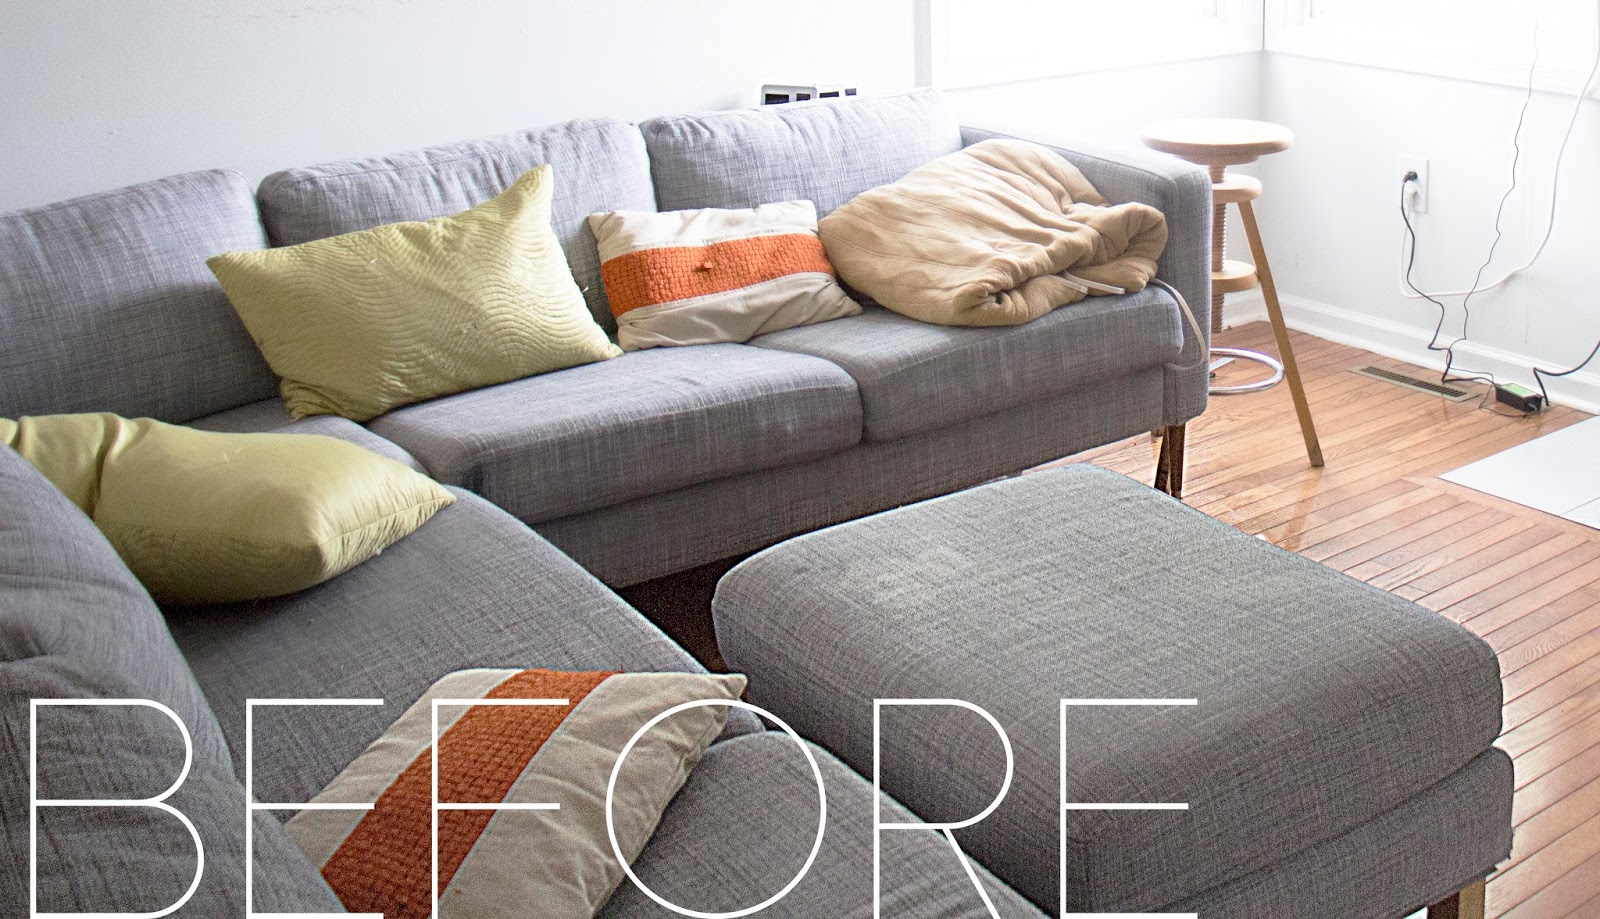 Finally AFFORDABLE IKEA Sofa Slipcovers. August 9, 2016